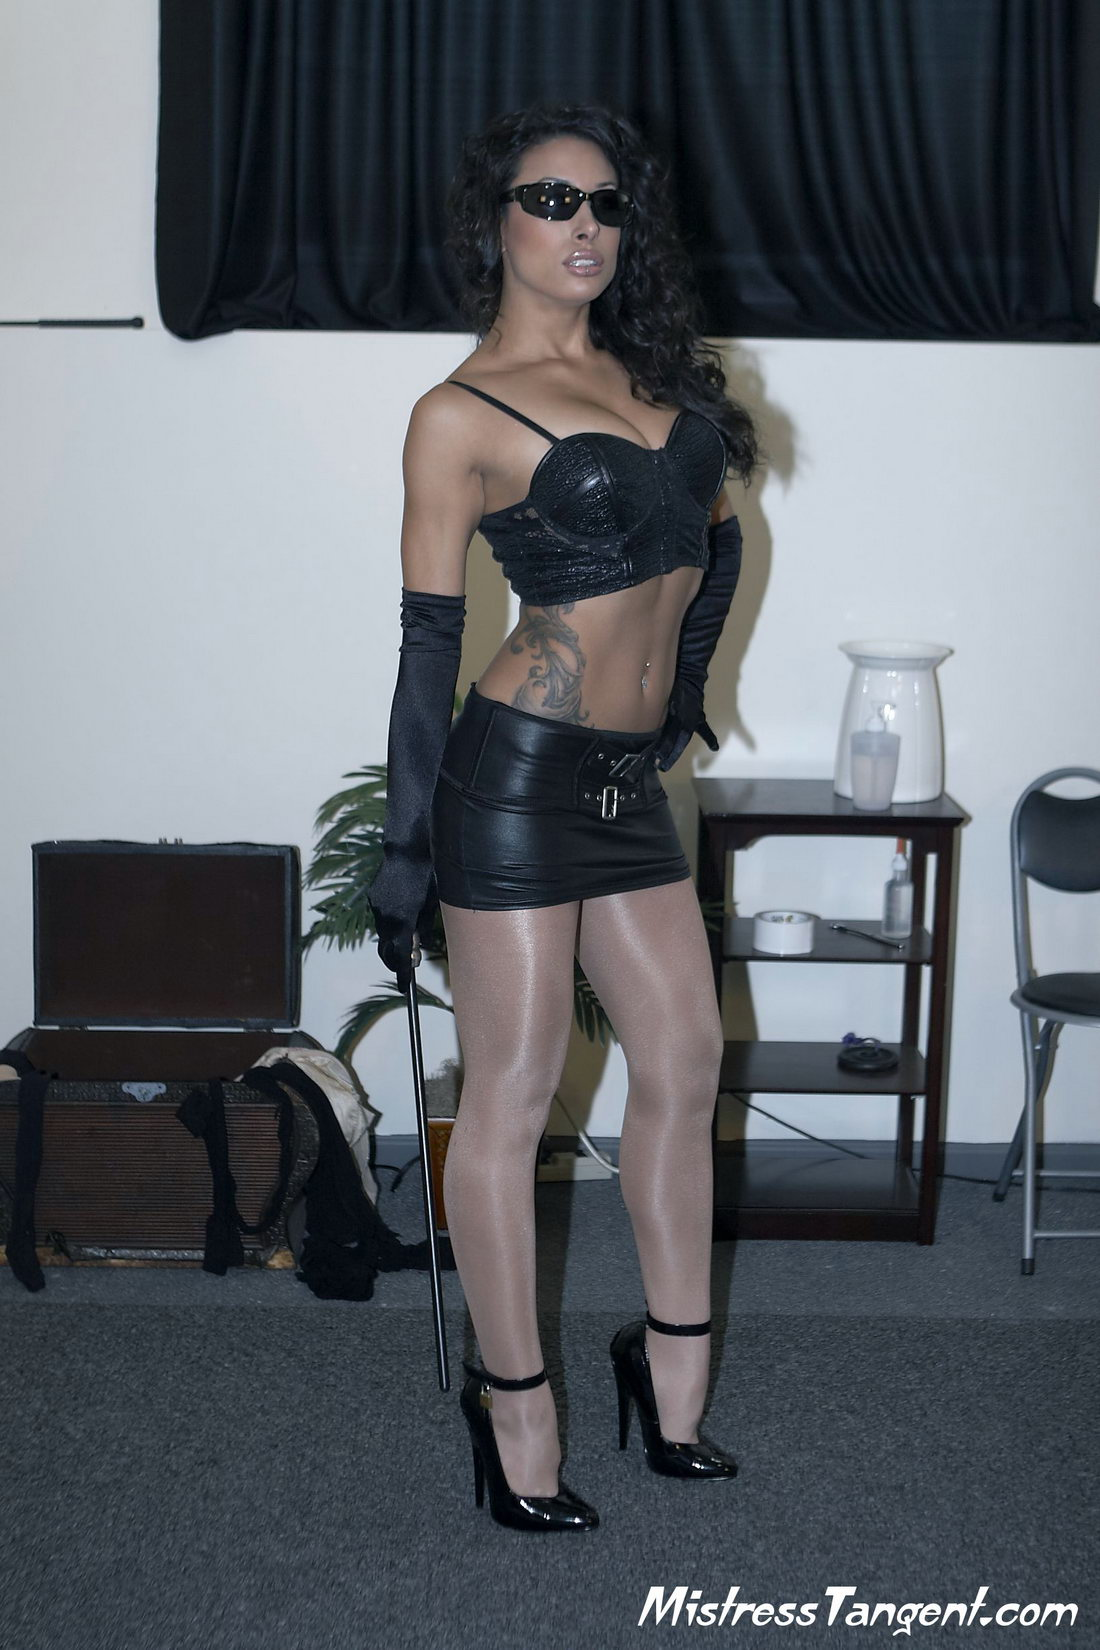 Black Shiny Pantyhose Heels Skirt